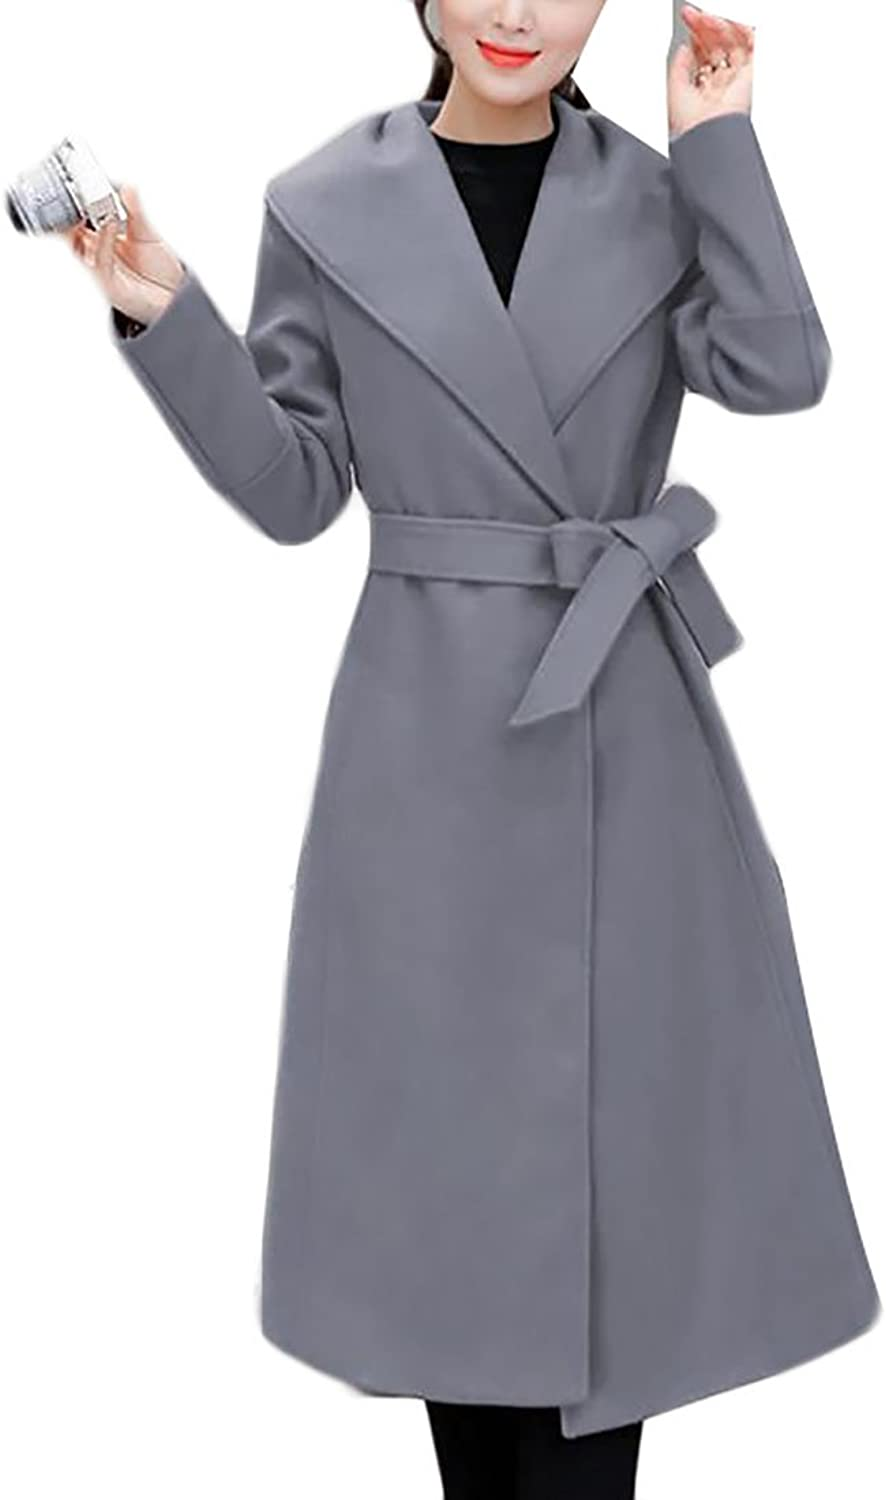 YUNY Womens Elegant Solid Belt Wool Blend Solid MidLong Overcoat